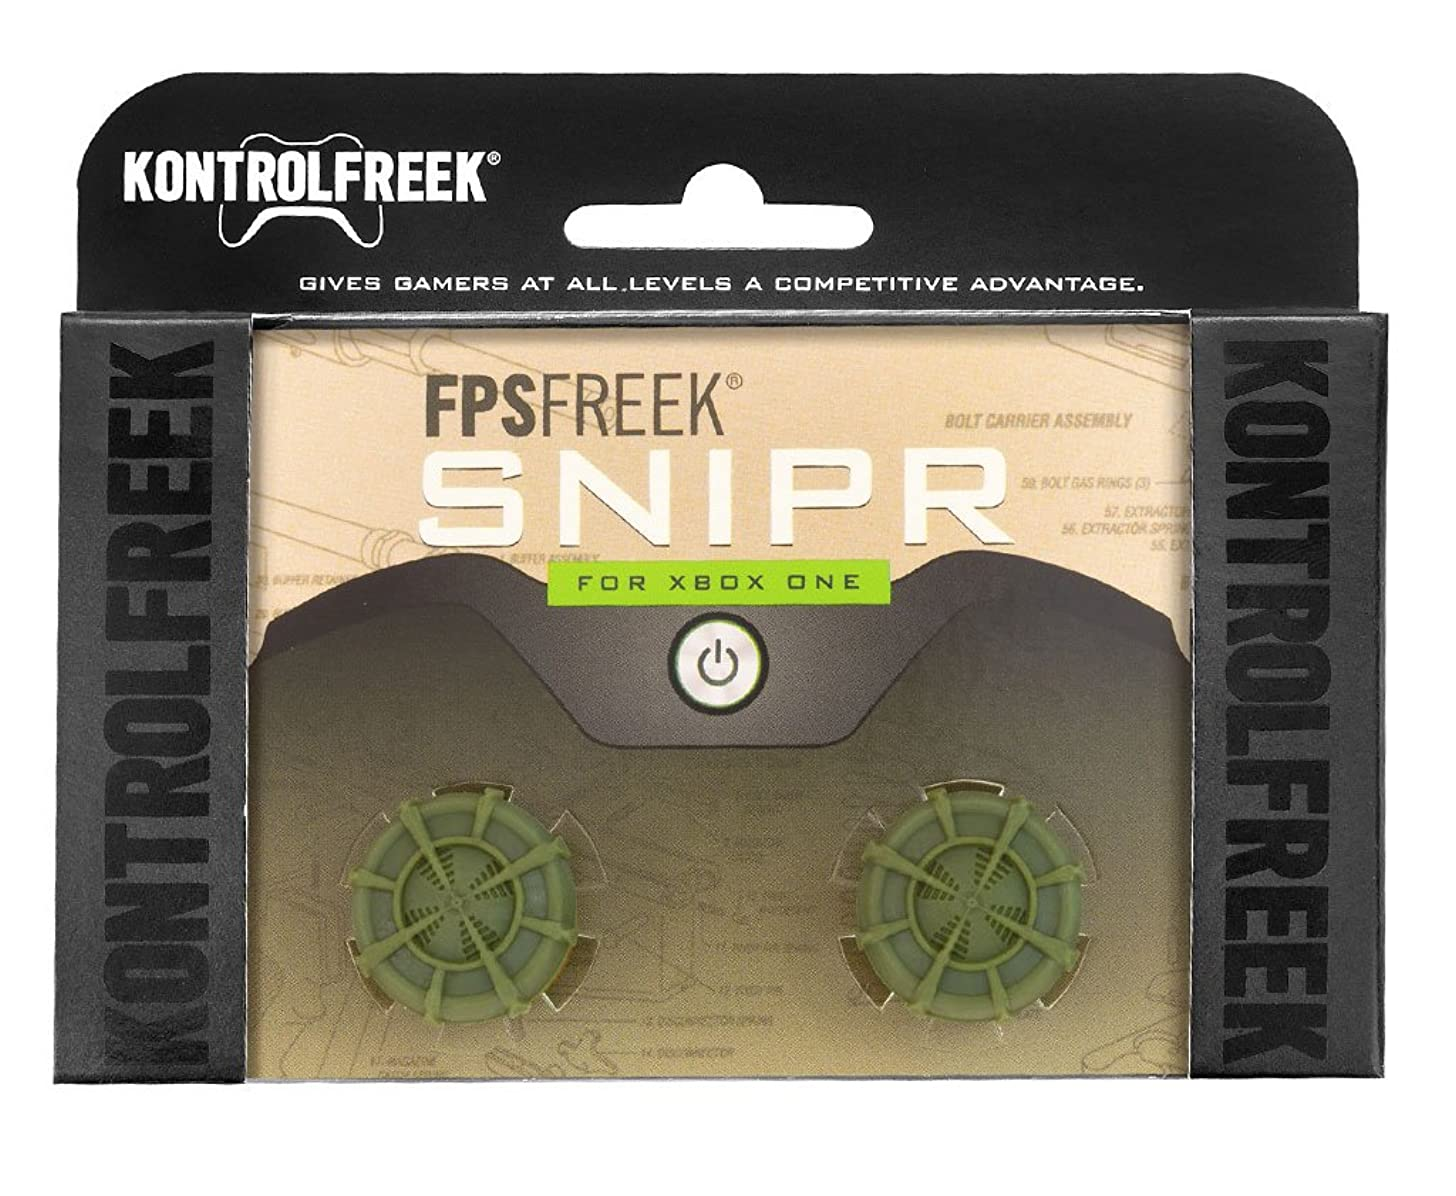 KontrolFreek FPS Freek Snipr for Xbox One Controller   Performance Thumbsticks   2 High-Rise Convex (Domed)   Green